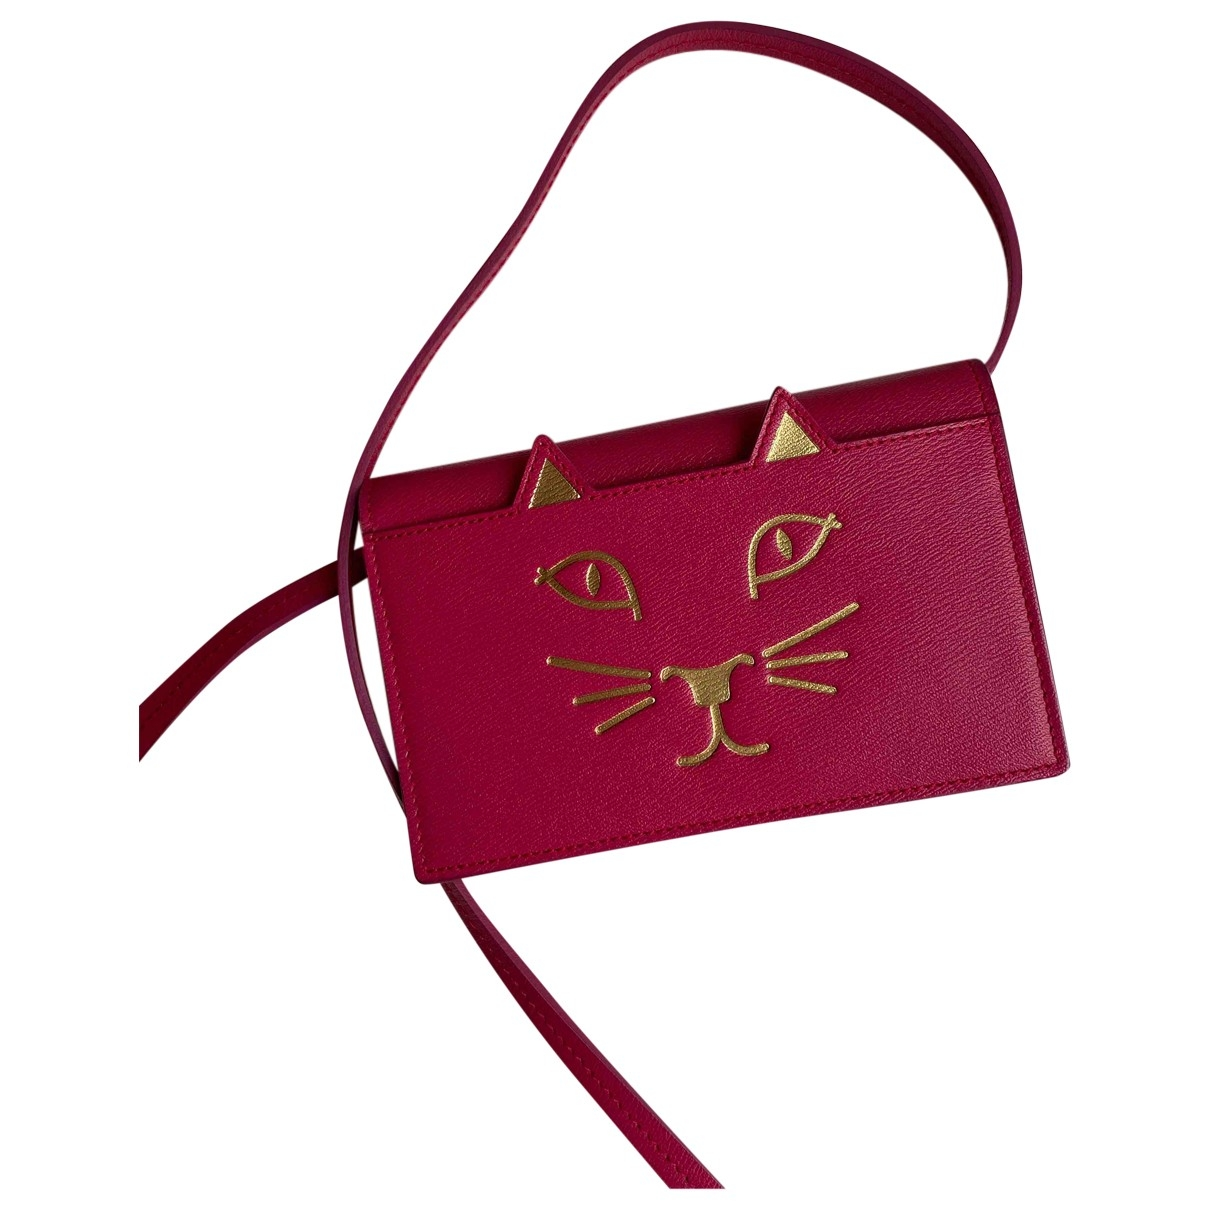 Charlotte Olympia - Sac a main   pour femme en cuir - rose